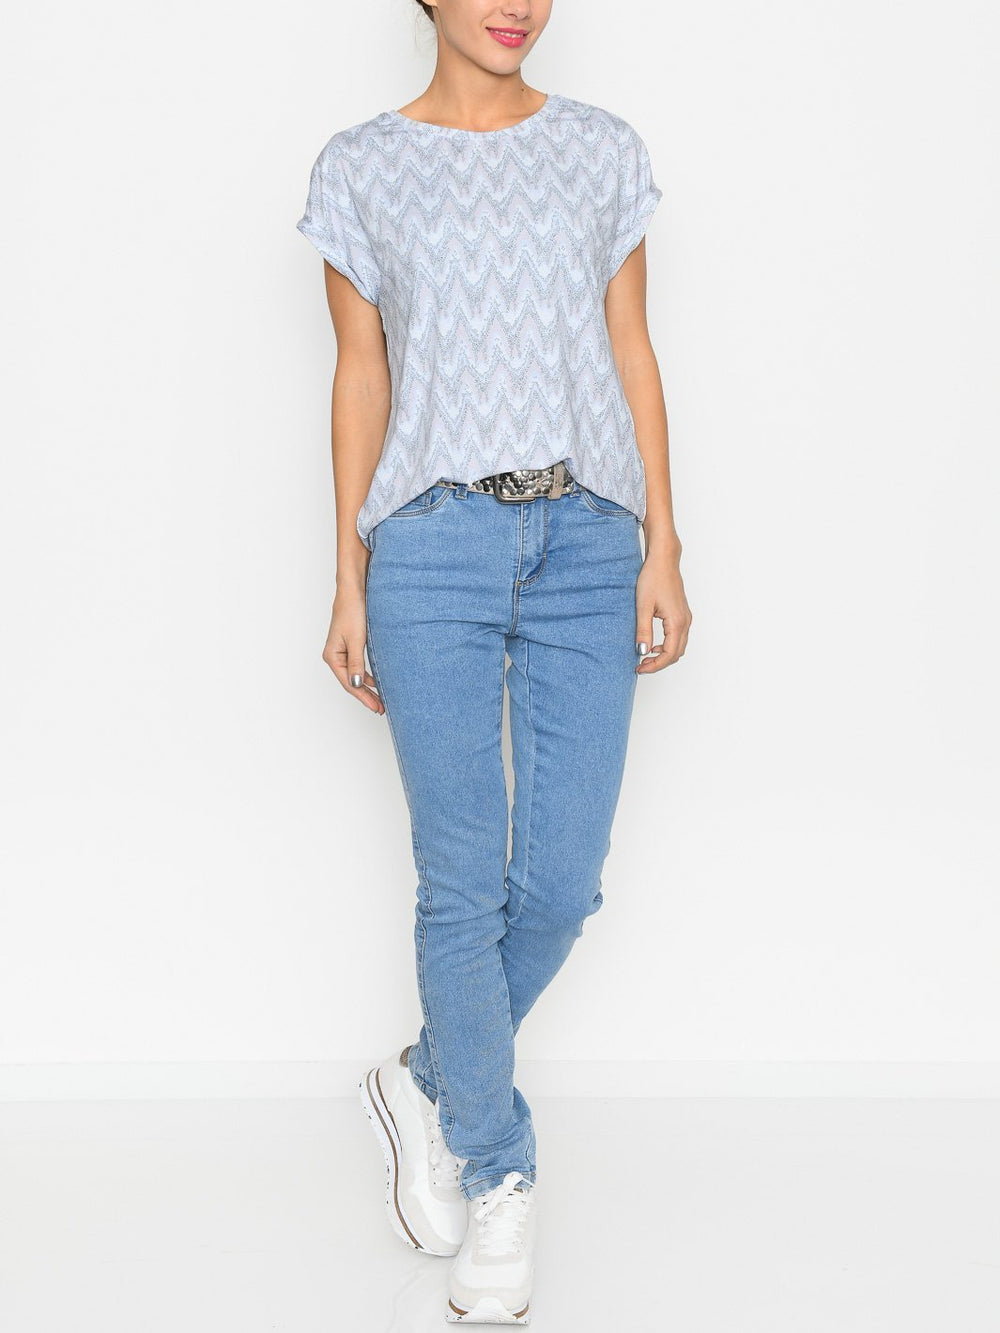 Fransa FRpeseen 1 t-shirt brunnera blue mix - Online-Mode